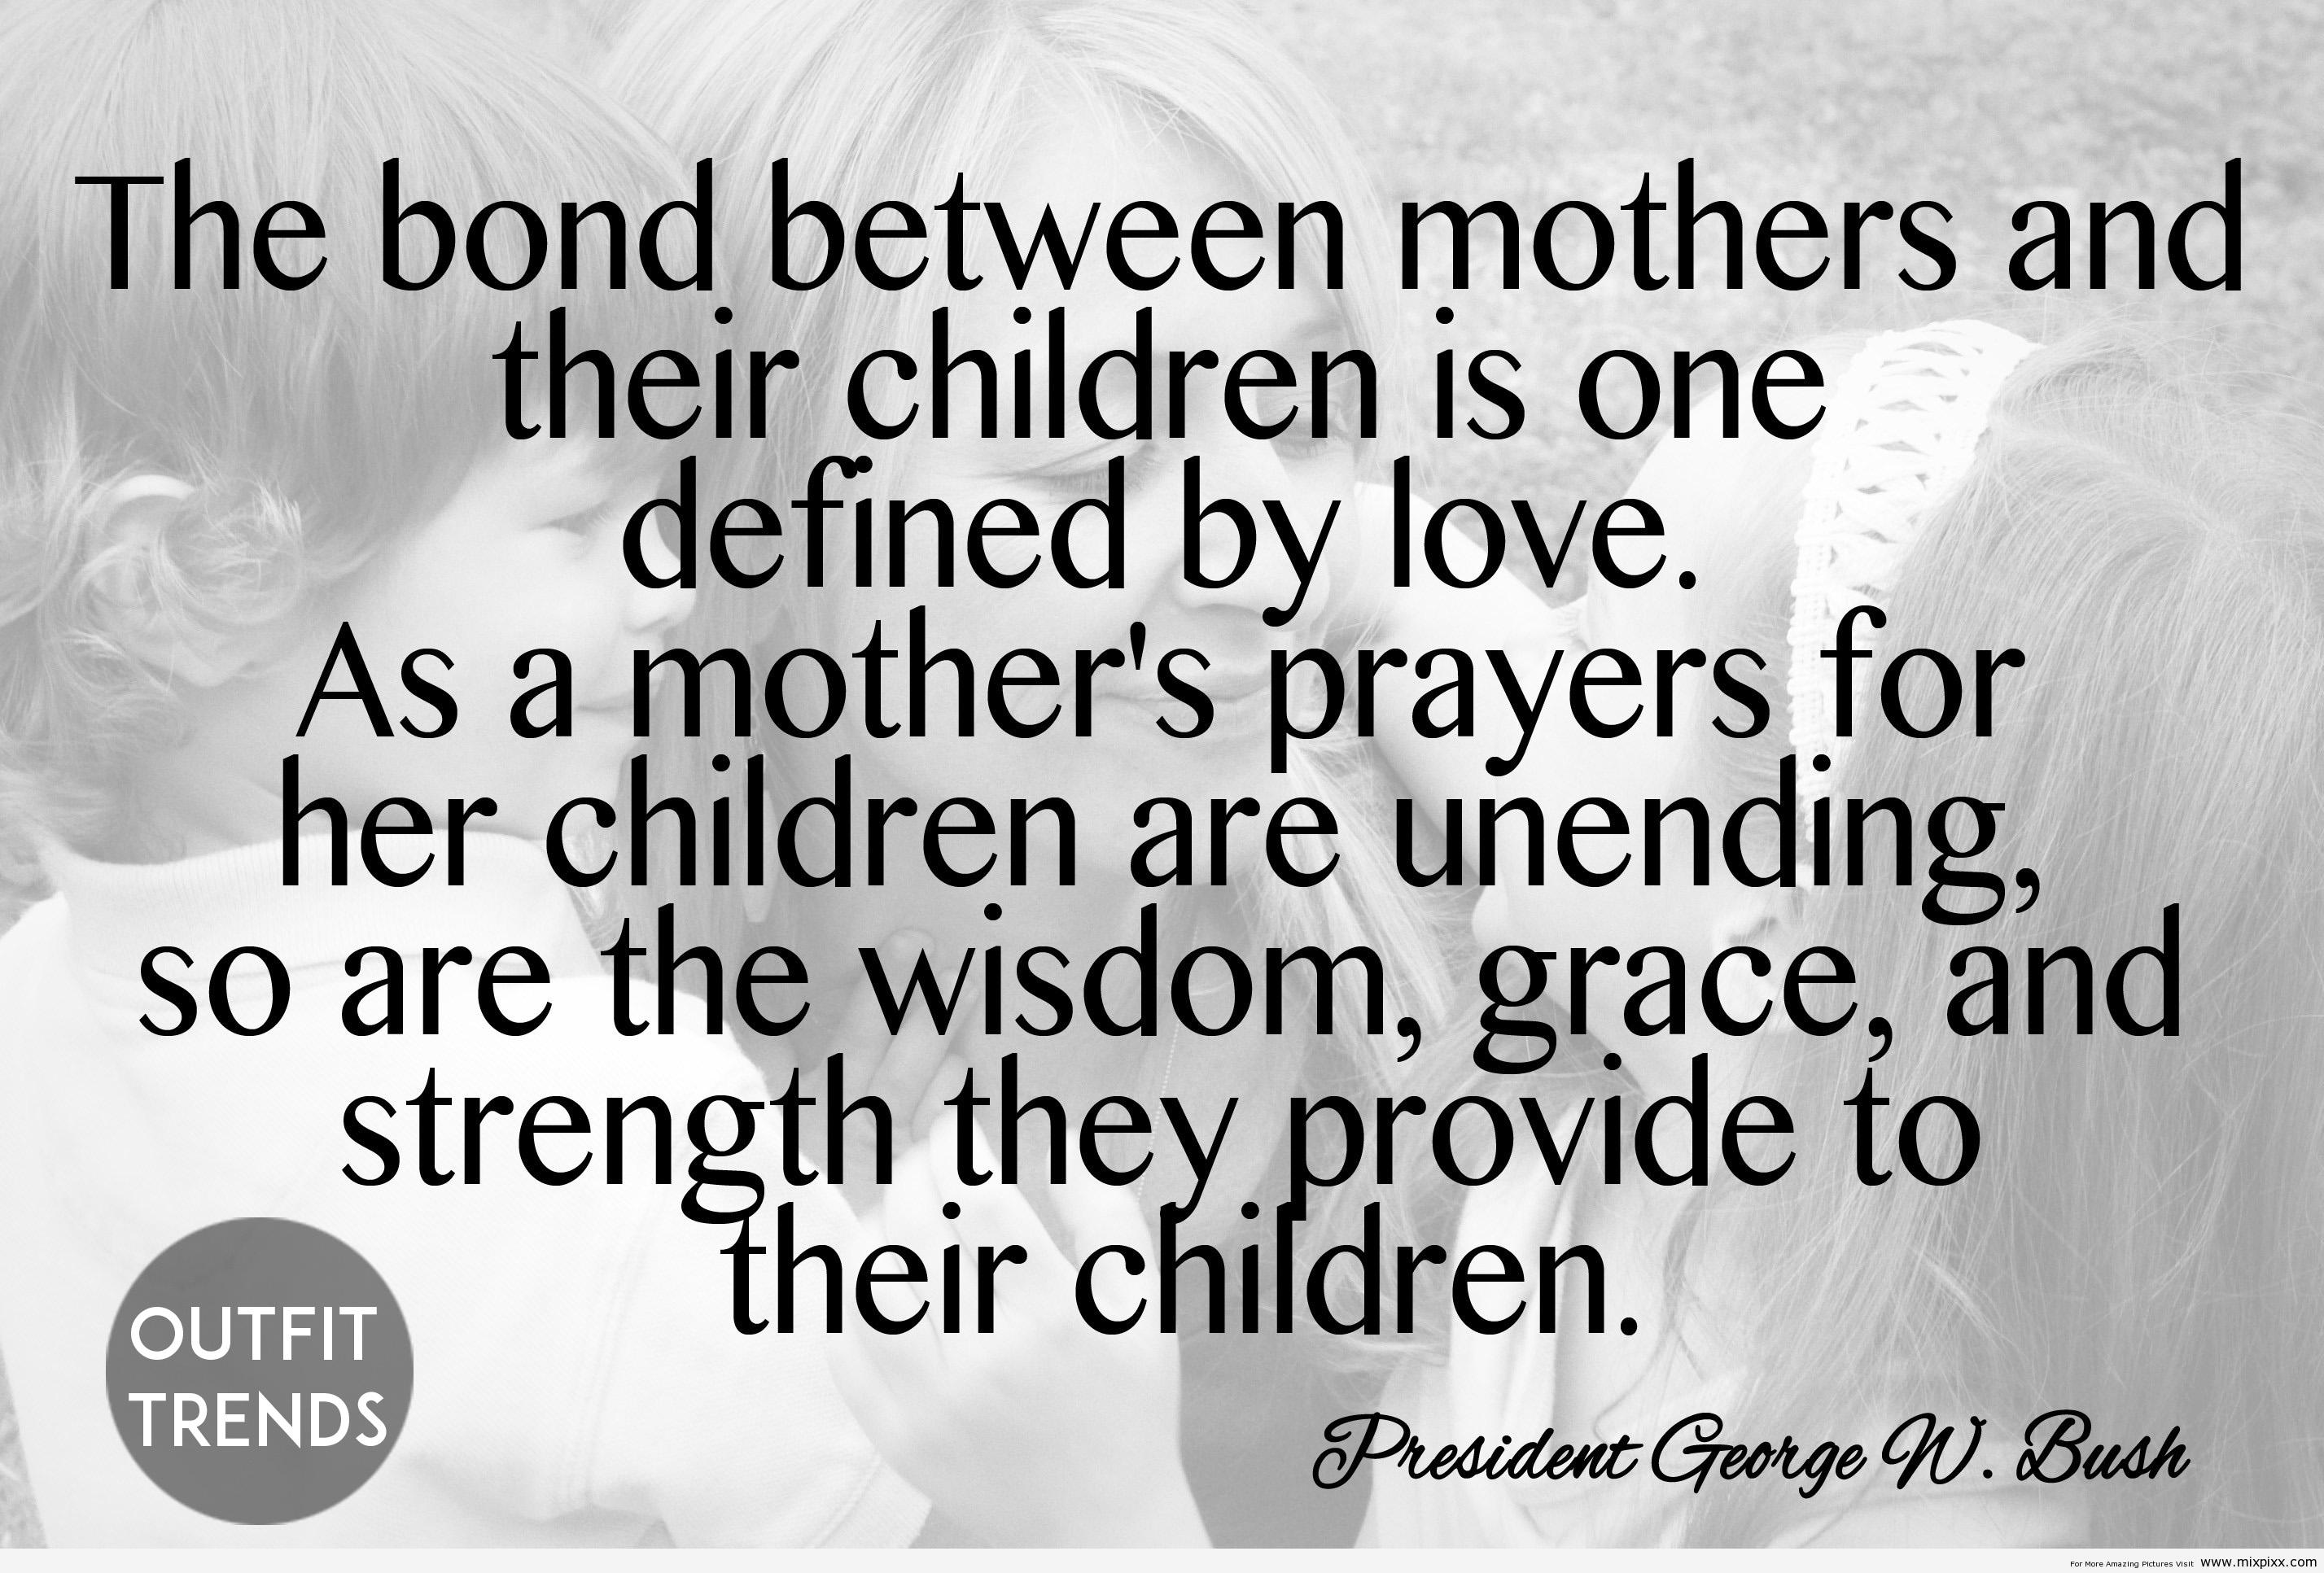 Mothers Love Quotes 50 Quotes About Mothersislamic And General Quotes On Mothers